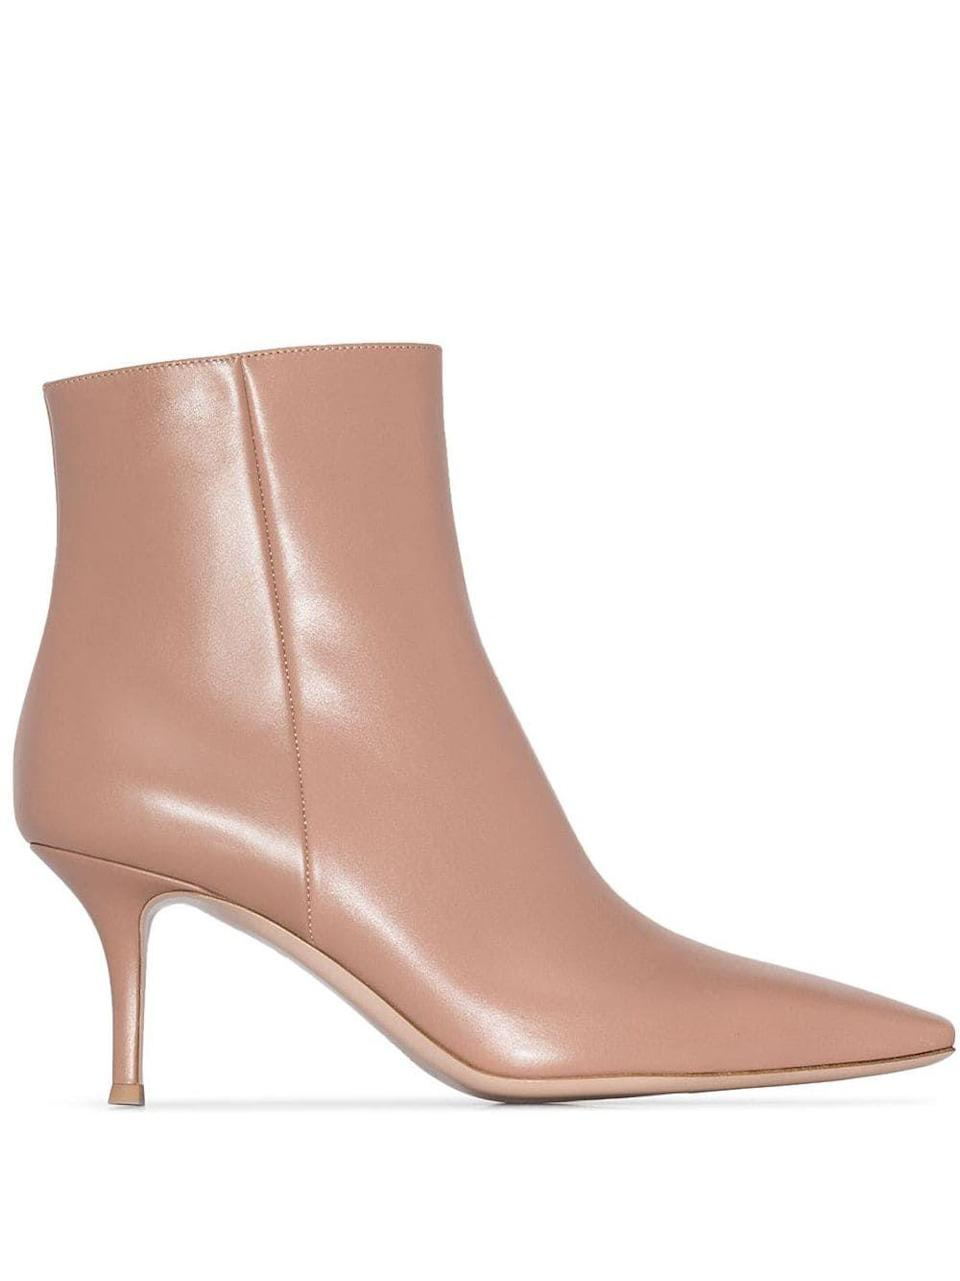 """<p><strong>Gianvito Rossi</strong></p><p>farfetch.com</p><p><strong>$455.00</strong></p><p><a href=""""https://go.redirectingat.com?id=74968X1596630&url=https%3A%2F%2Fwww.farfetch.com%2Fshopping%2Fwomen%2Fgianvito-rossi-stiletto-ankle-boots-item-13679633.aspx&sref=https%3A%2F%2Fwww.harpersbazaar.com%2Ffashion%2Ftrends%2Fg7958%2Fhow-to-wear-ankle-boots%2F"""" rel=""""nofollow noopener"""" target=""""_blank"""" data-ylk=""""slk:Shop Now"""" class=""""link rapid-noclick-resp"""">Shop Now</a></p><p>Gianvito Rossi's neutral ankle boot is both minimal and elegant—and sure to stand out among a sea of all-black booties. </p>"""